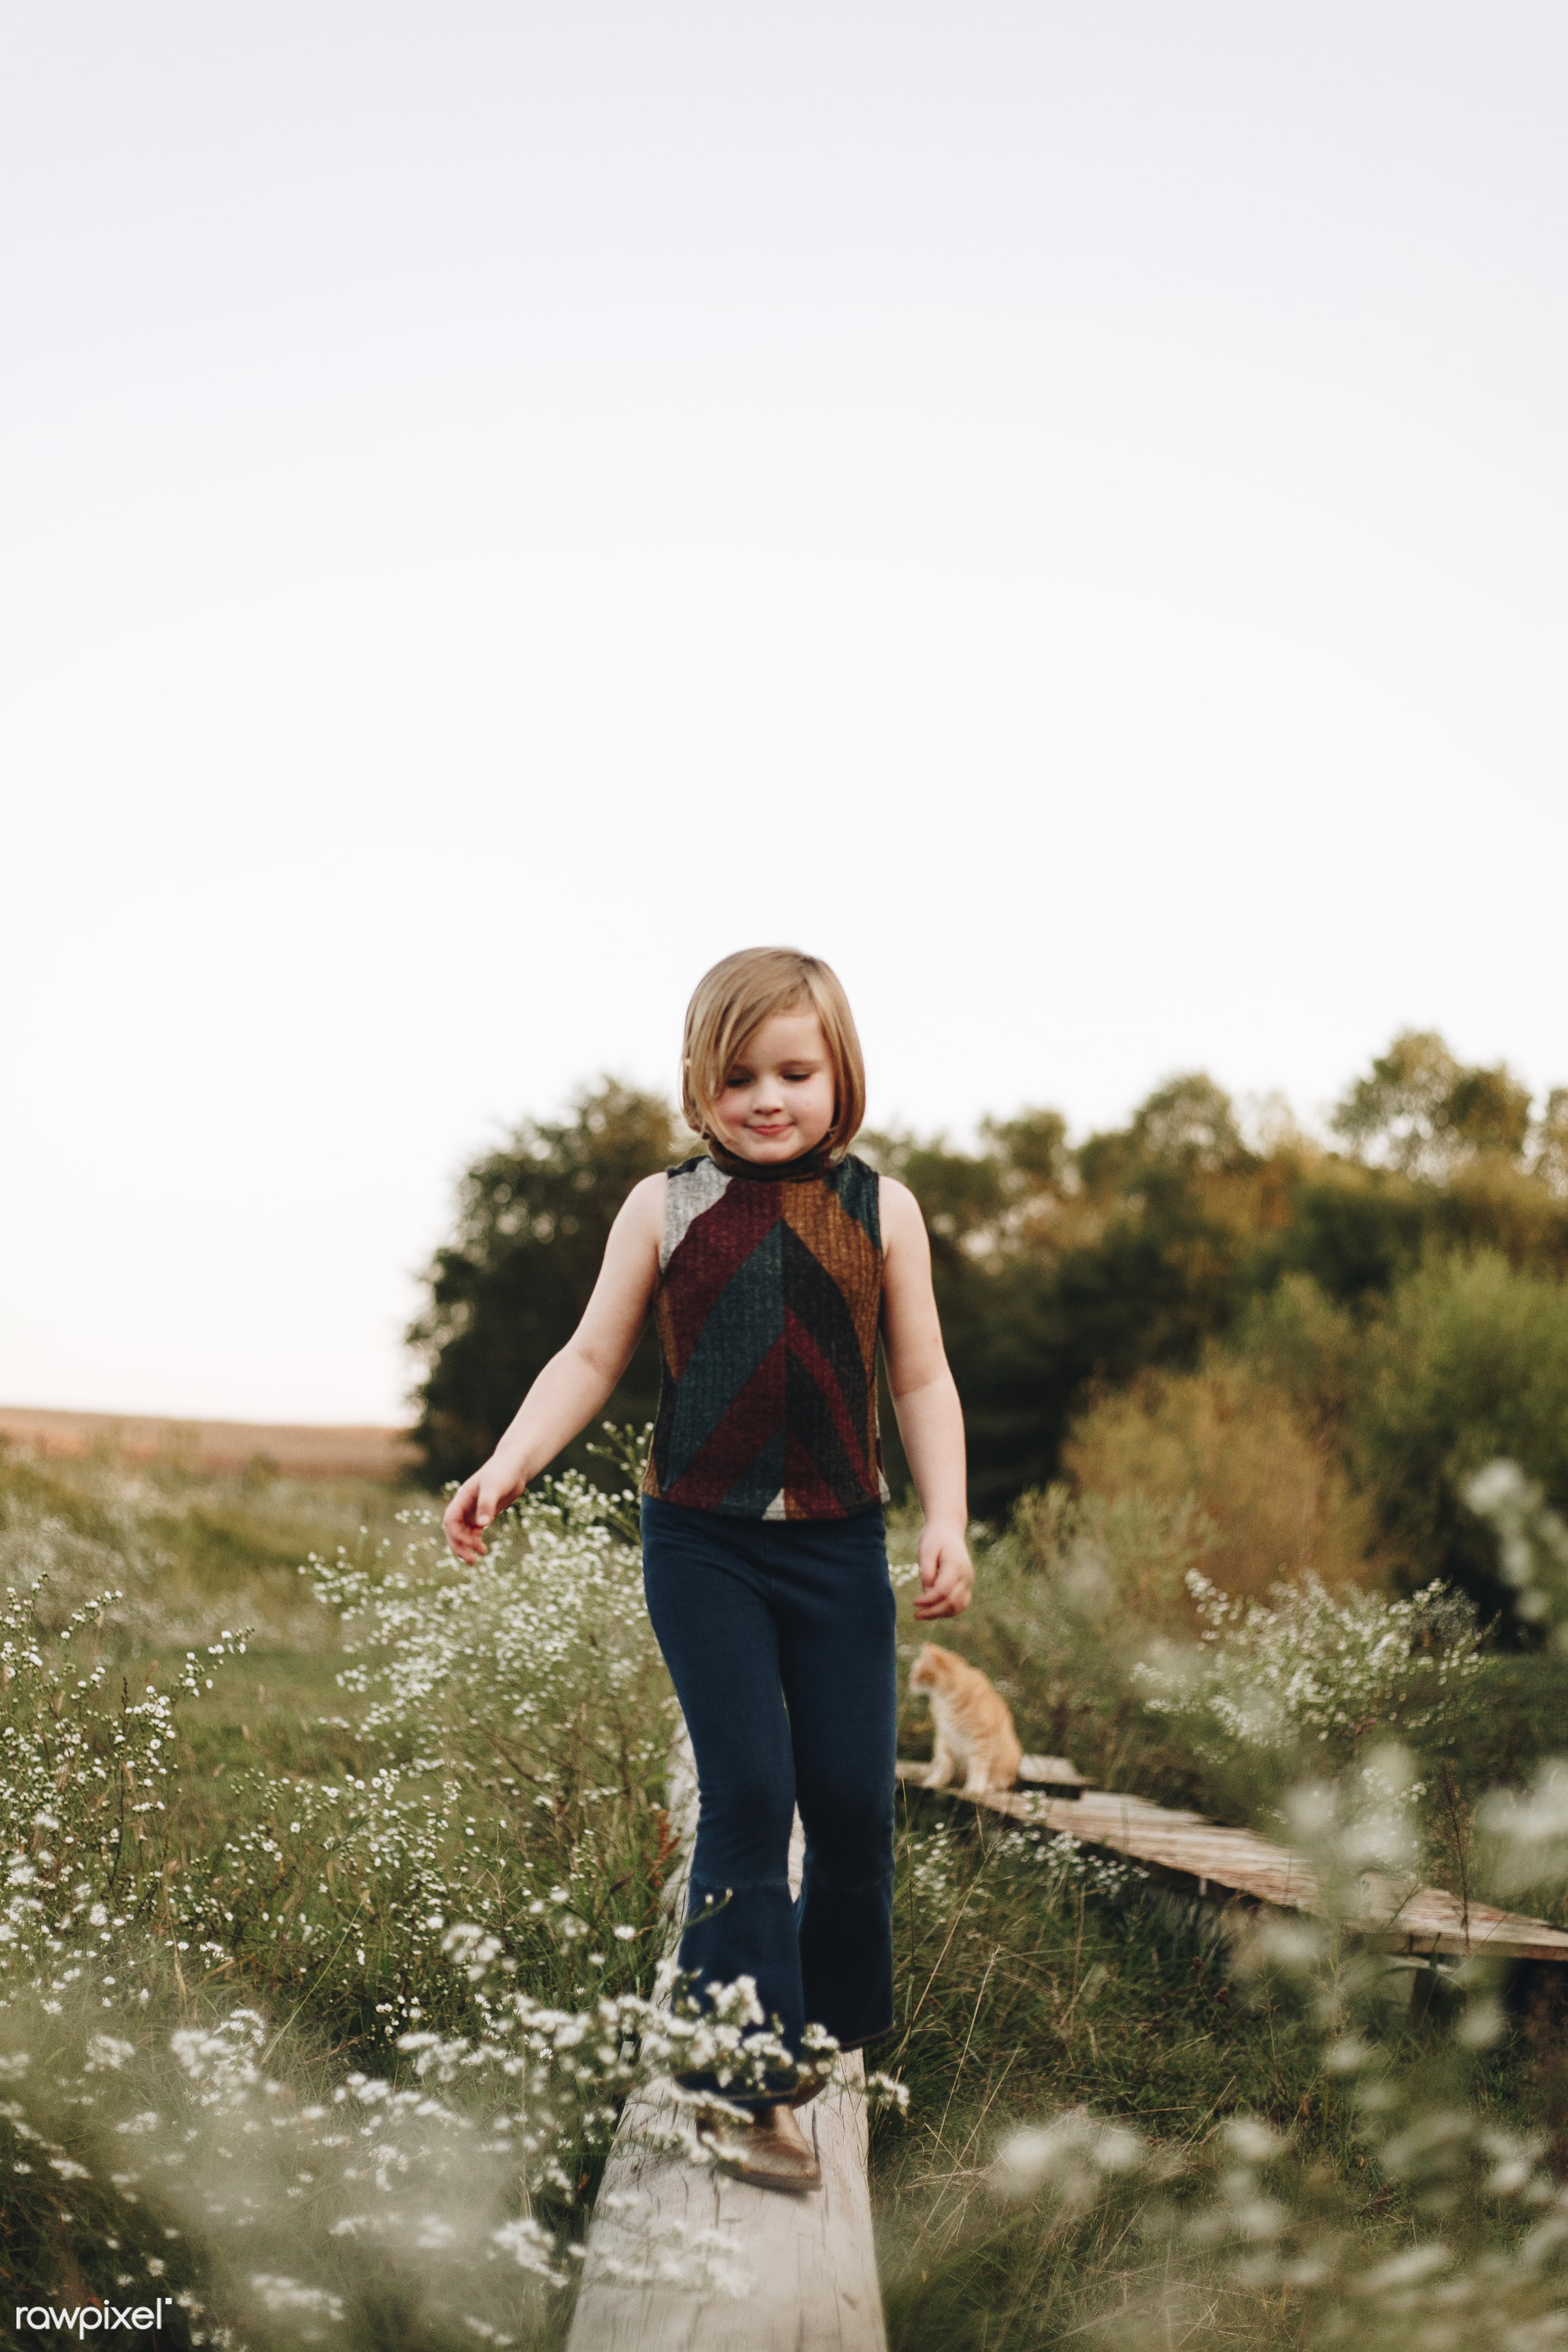 Little girl having fun in a farm - alone, america, american, canada, canadian, cheerful, child, countryside, daughter...